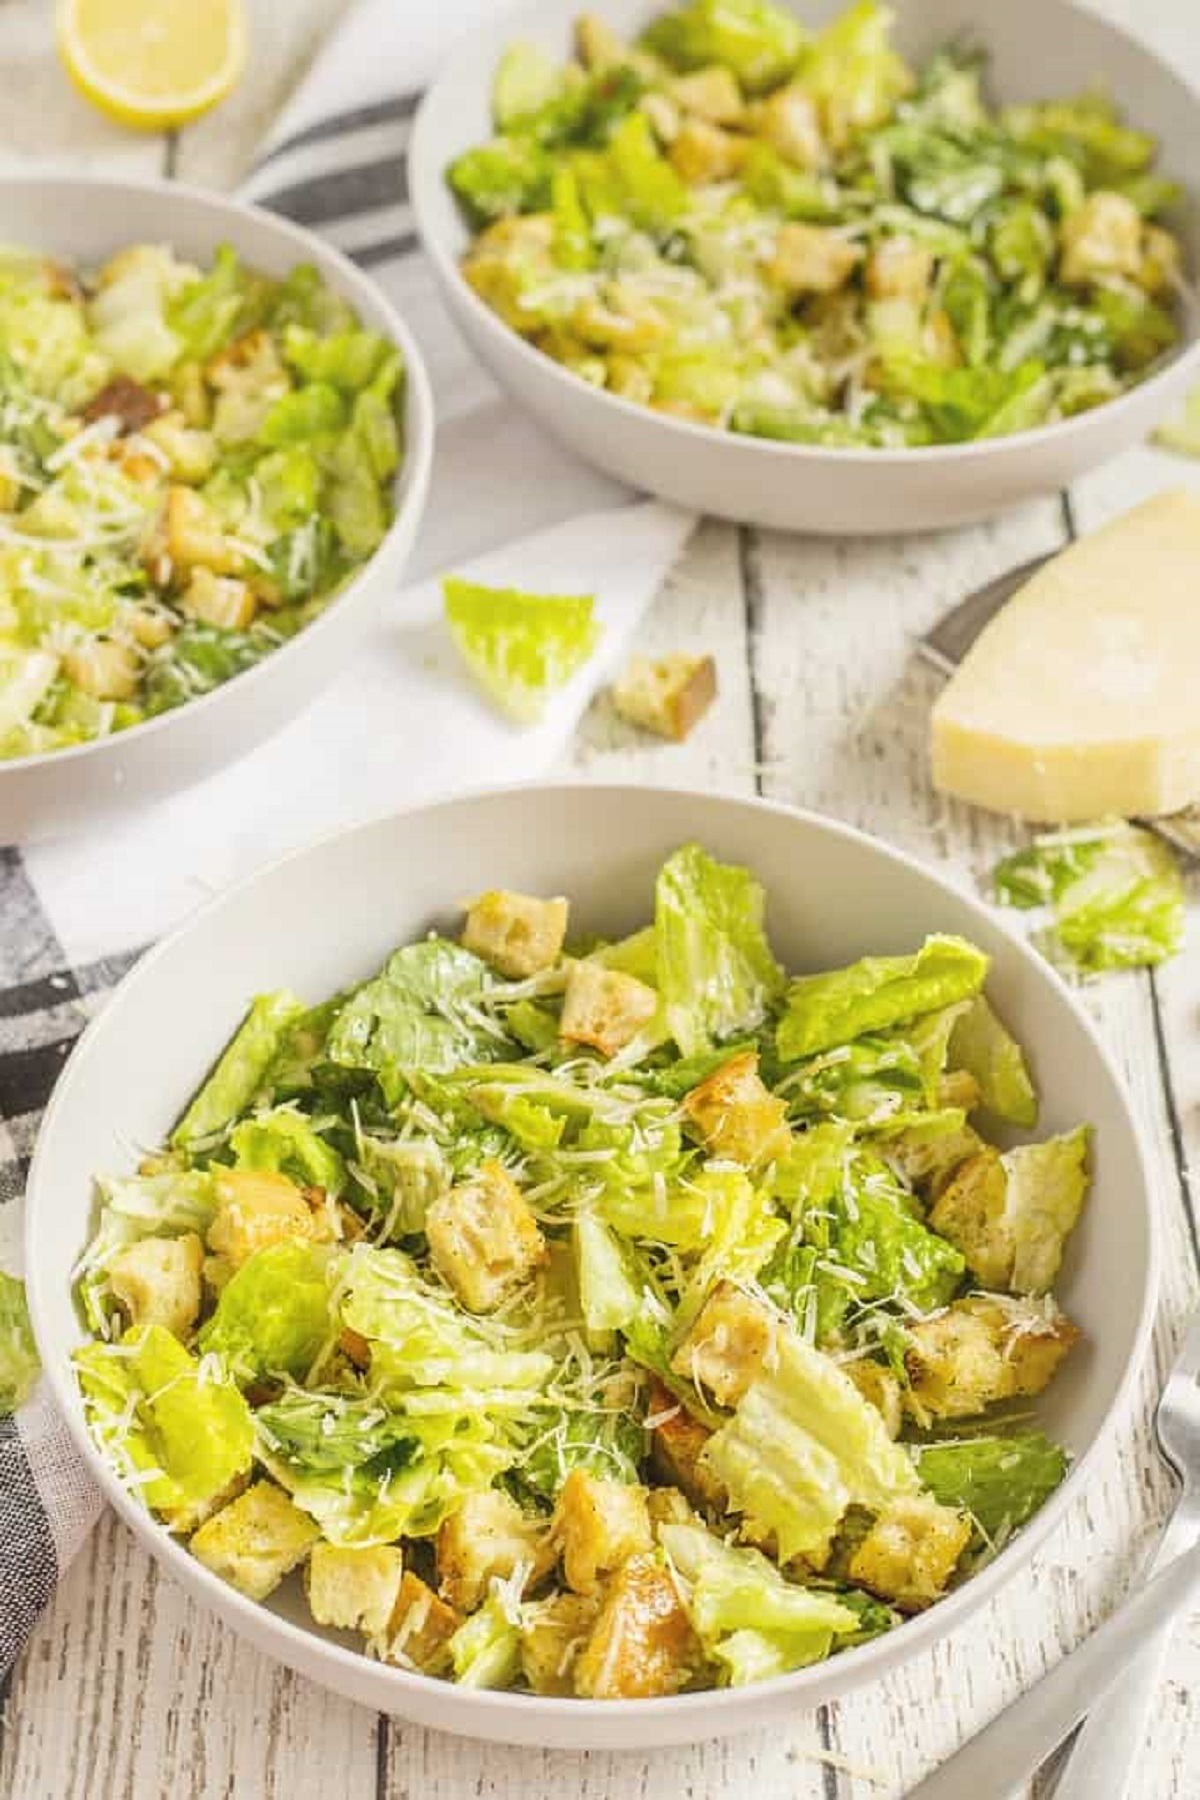 Classic Caesar salad with grated parmesan and croutons  in a white bowl